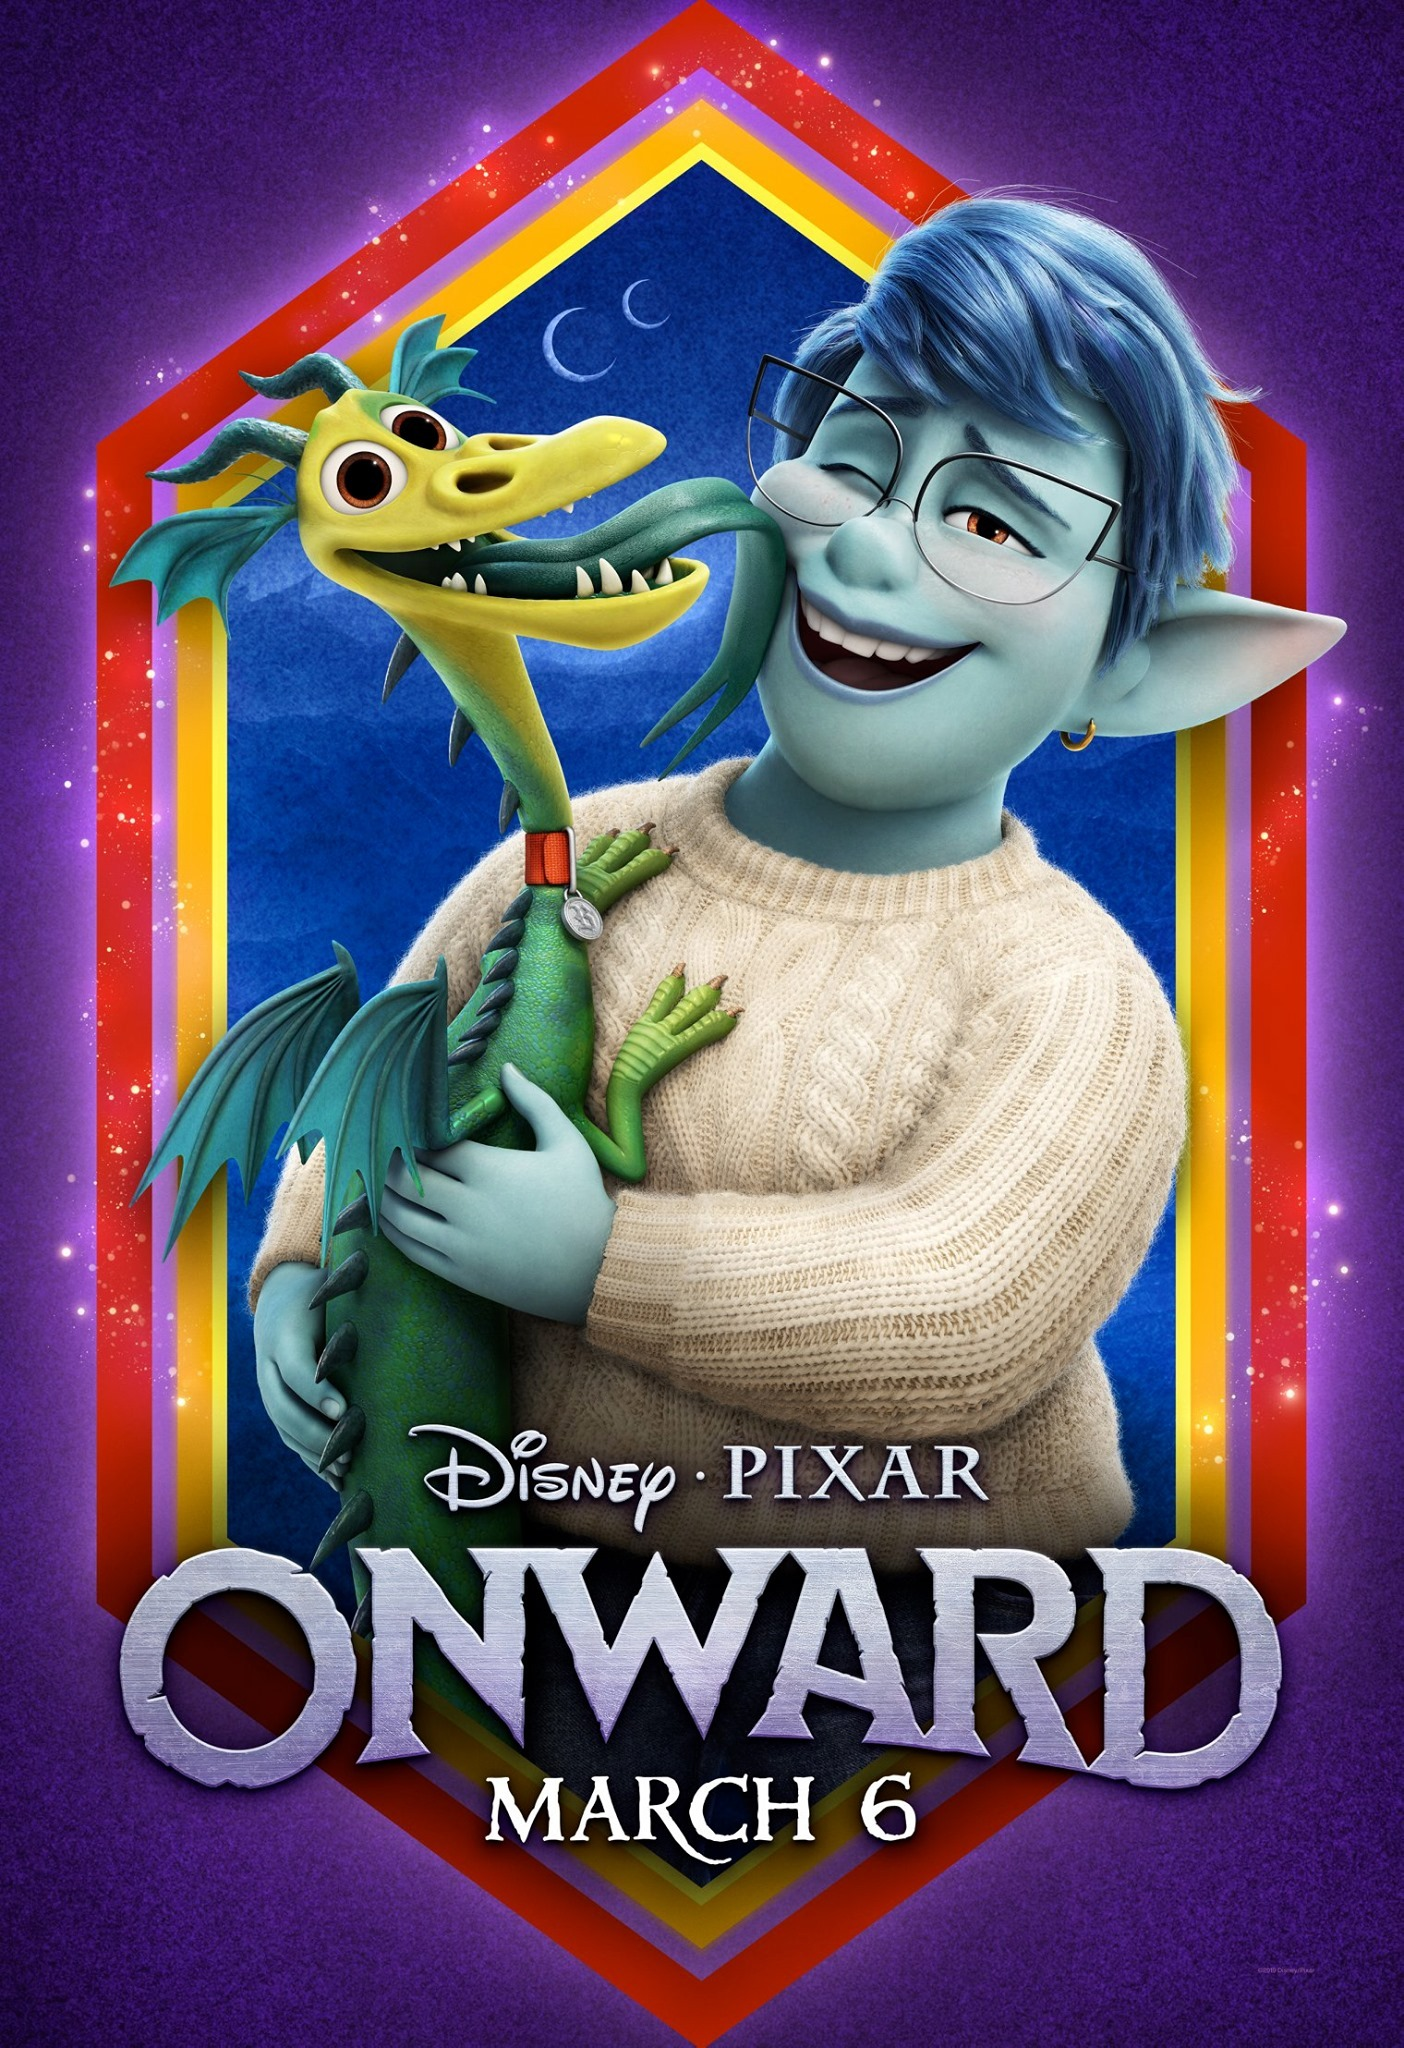 szmk_onward_disney_pixar_animacios_film_elore_6.jpg